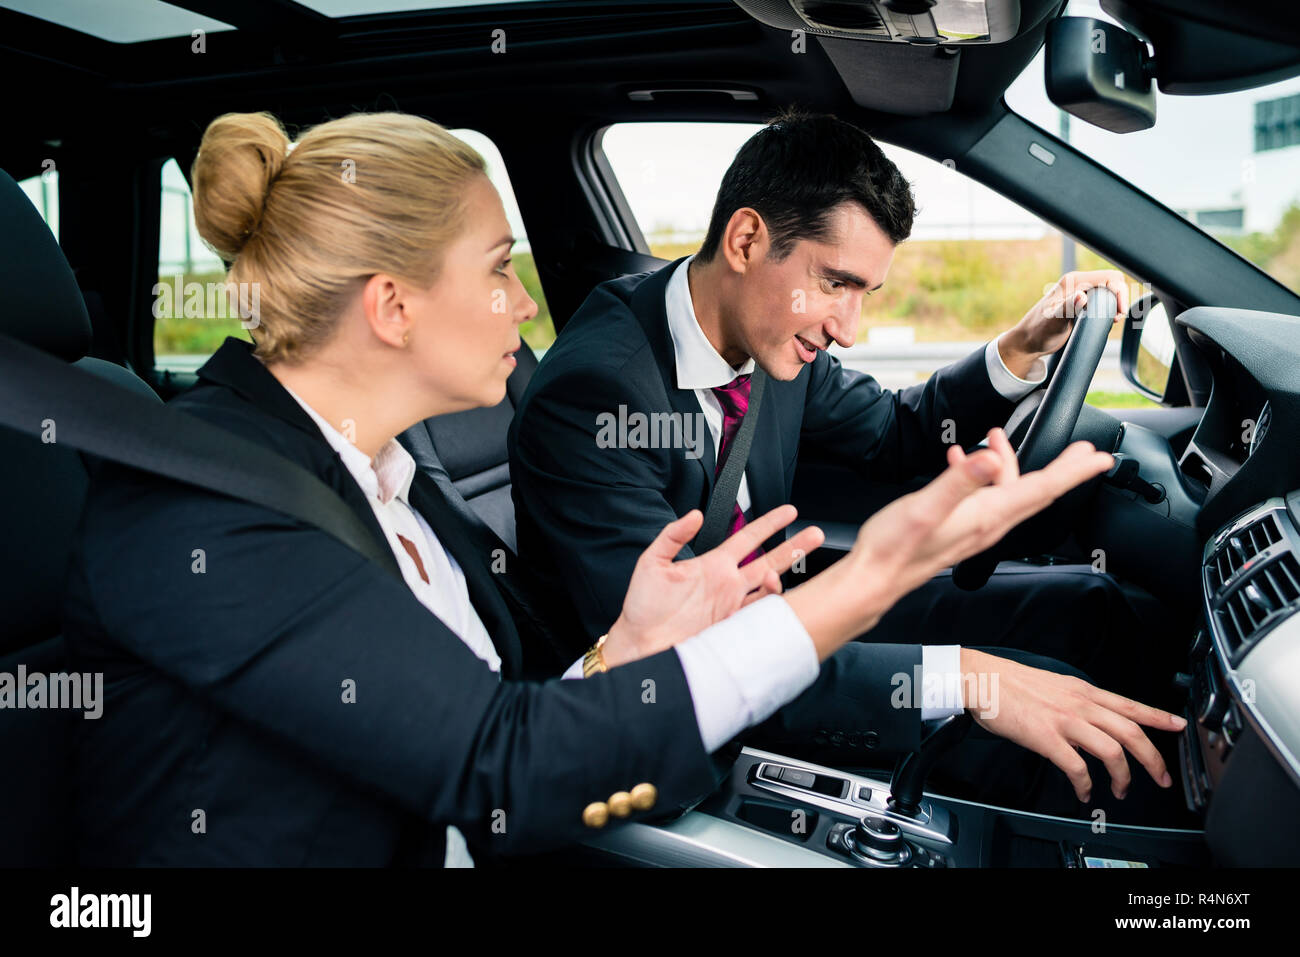 Man being lost in car, woman yelling at him - Stock Image